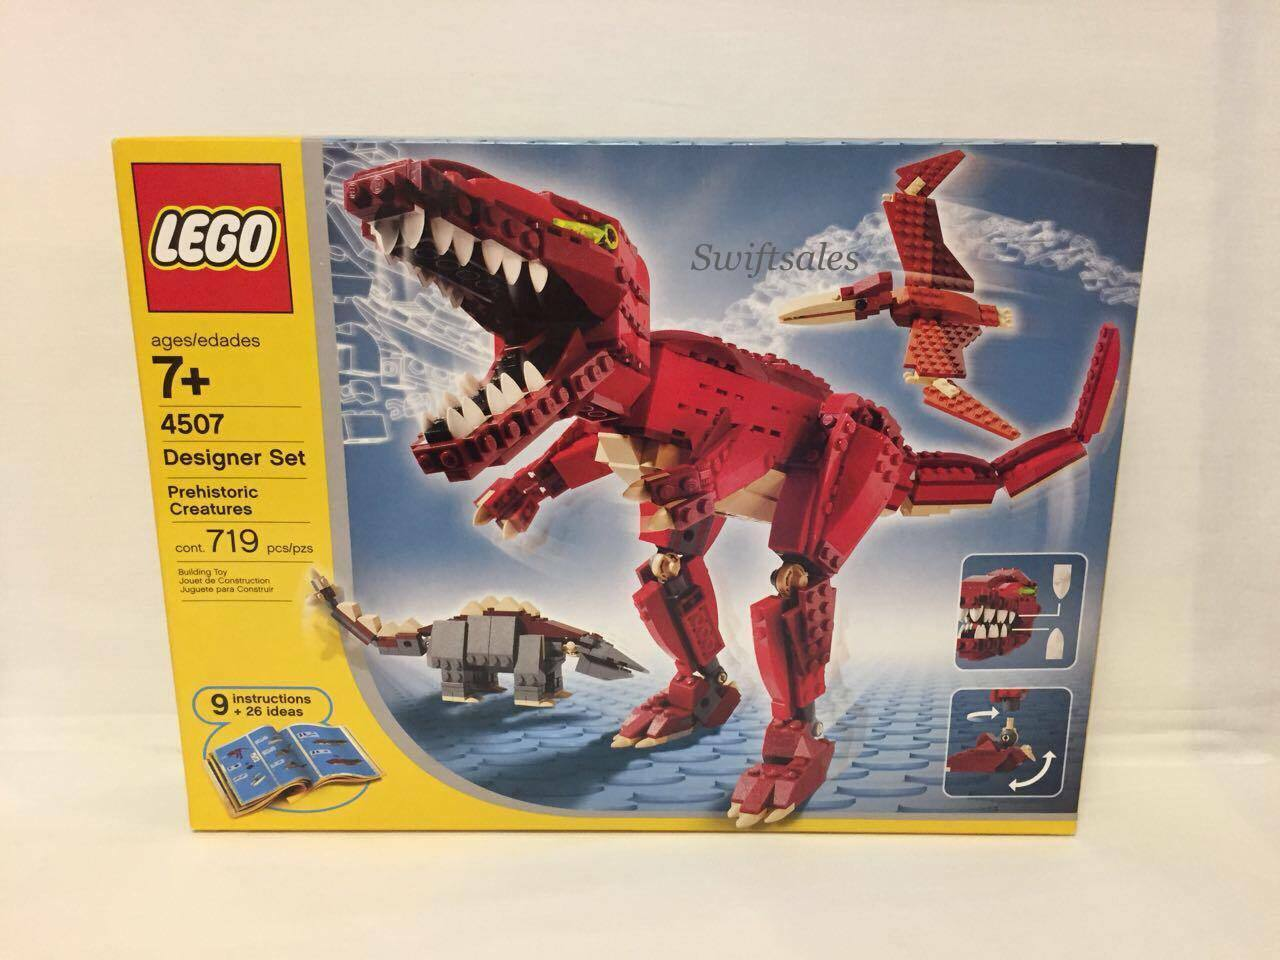 Lego 4507 Designer Set Prehistoric Creatures 2004 Retired Set - New Sealed Box